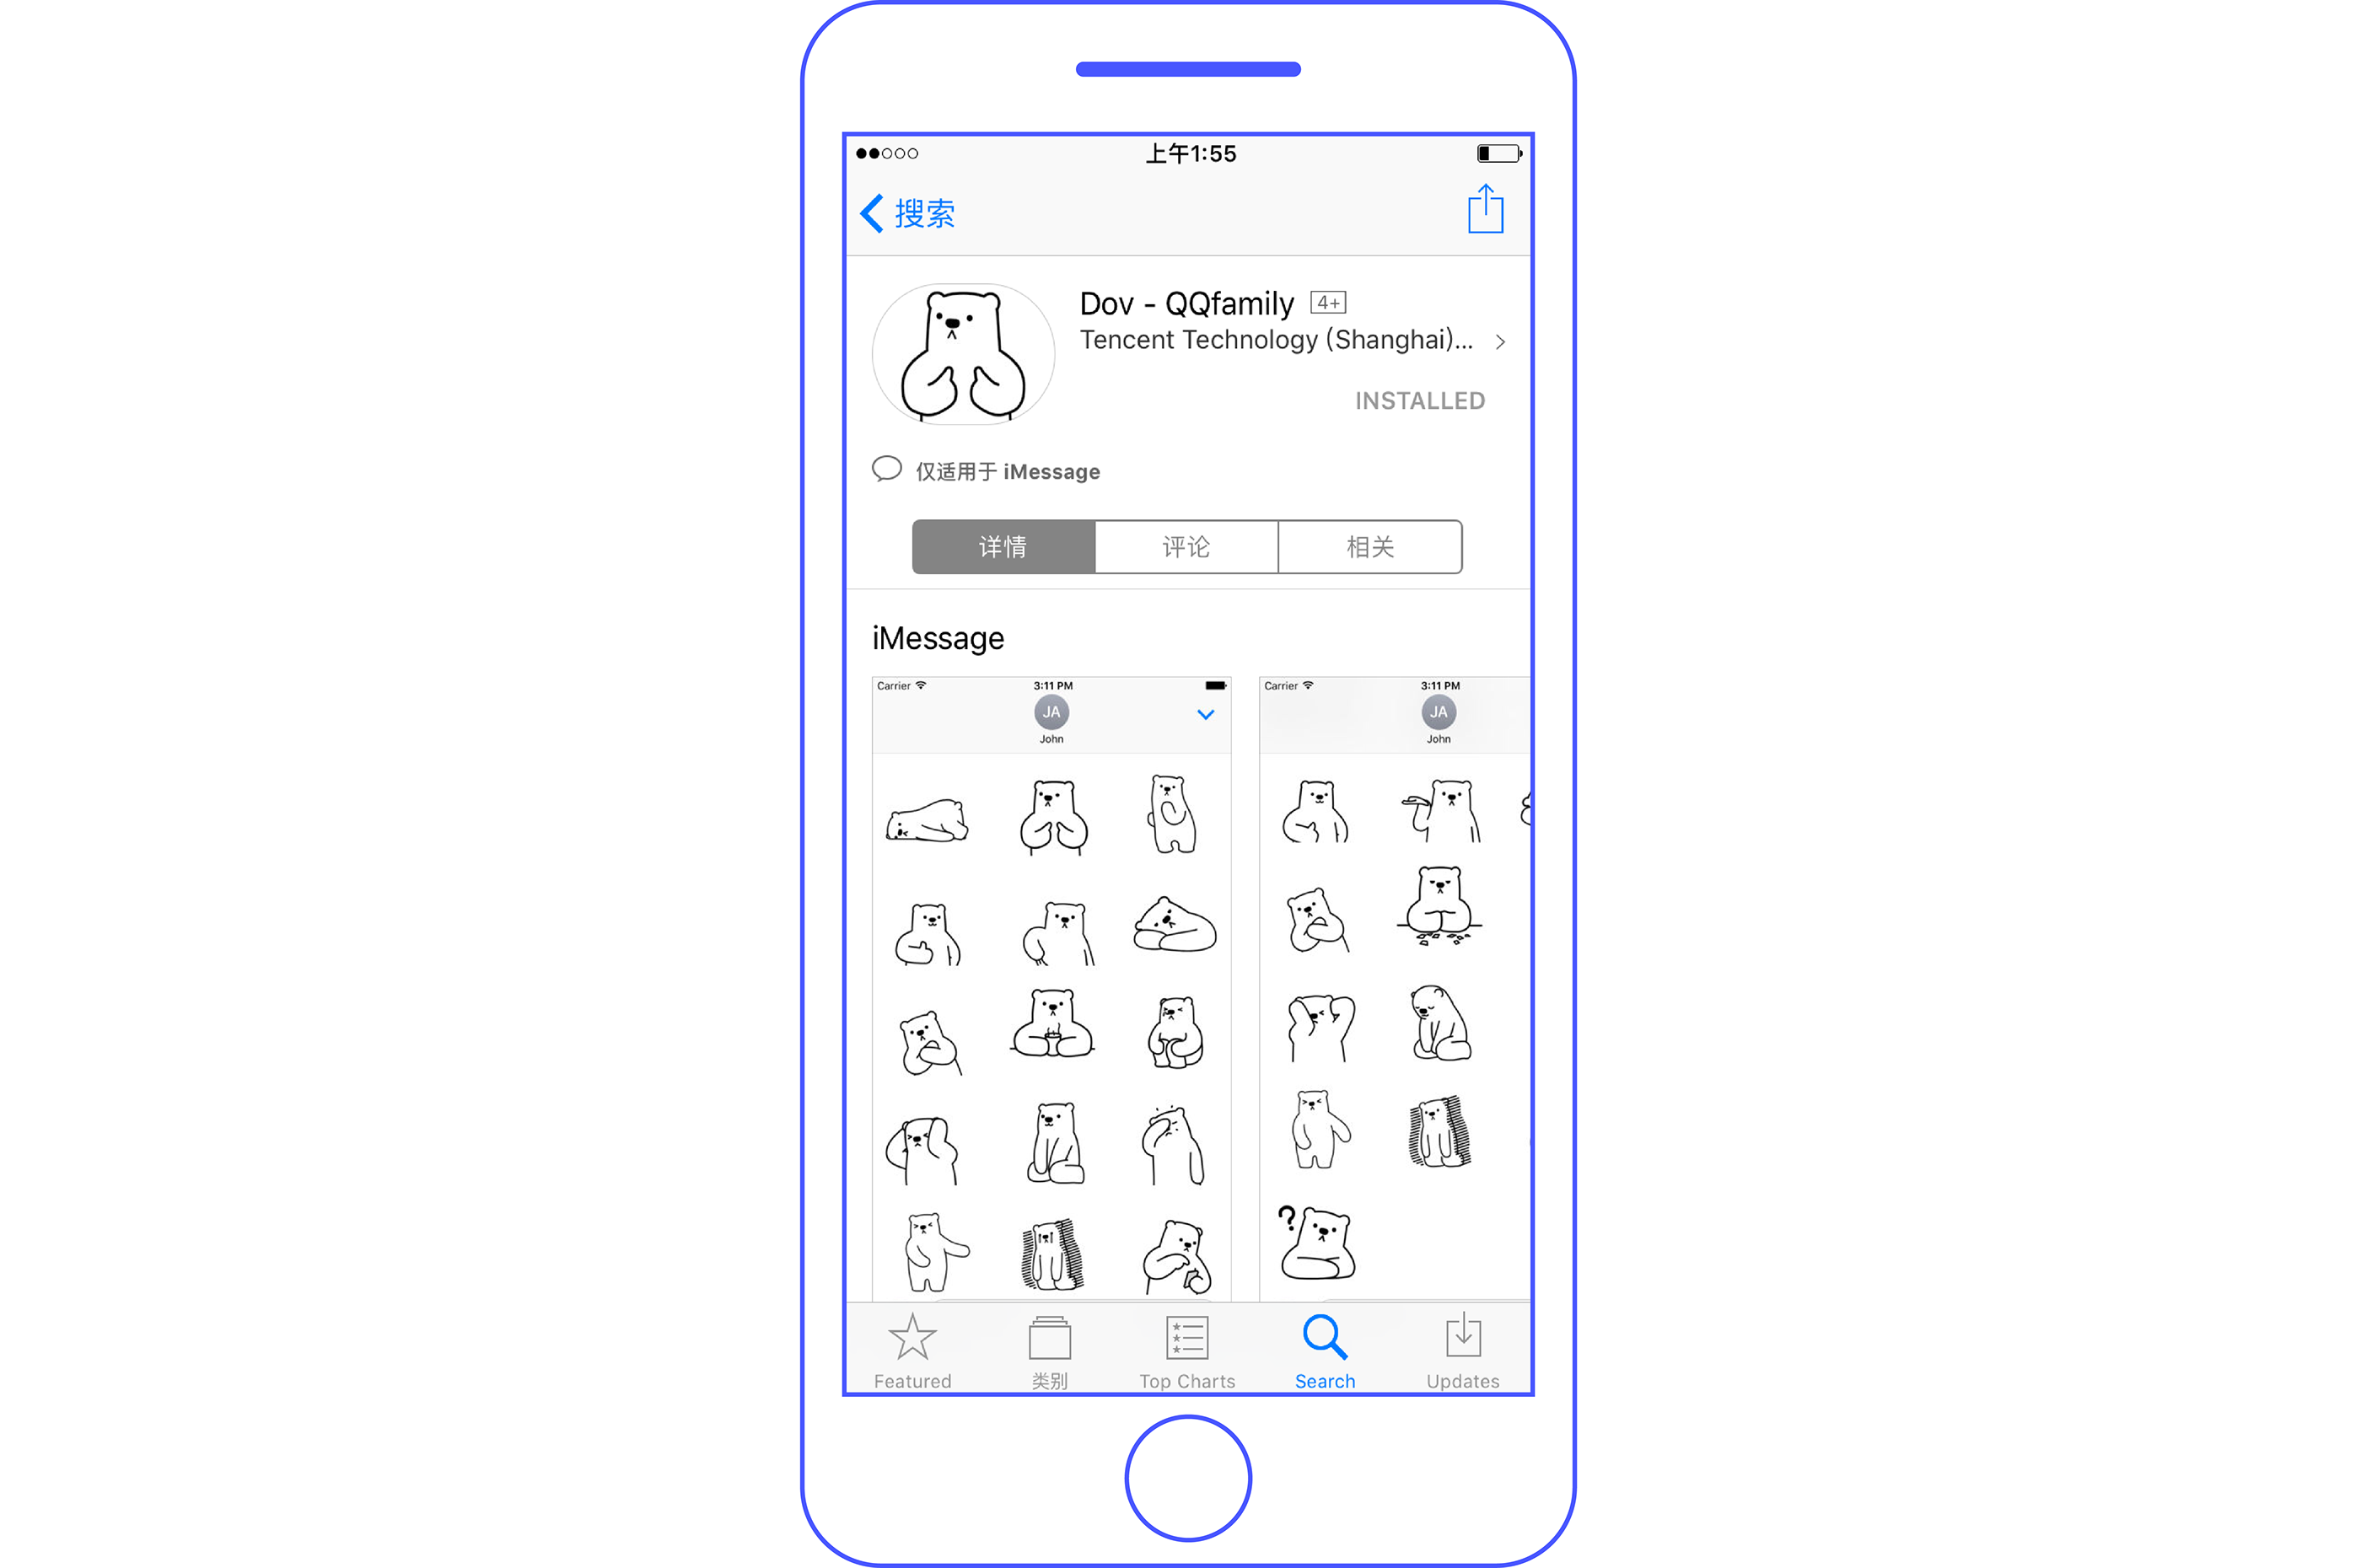 iMessage Stickers: Dov - QQfamily on Behance